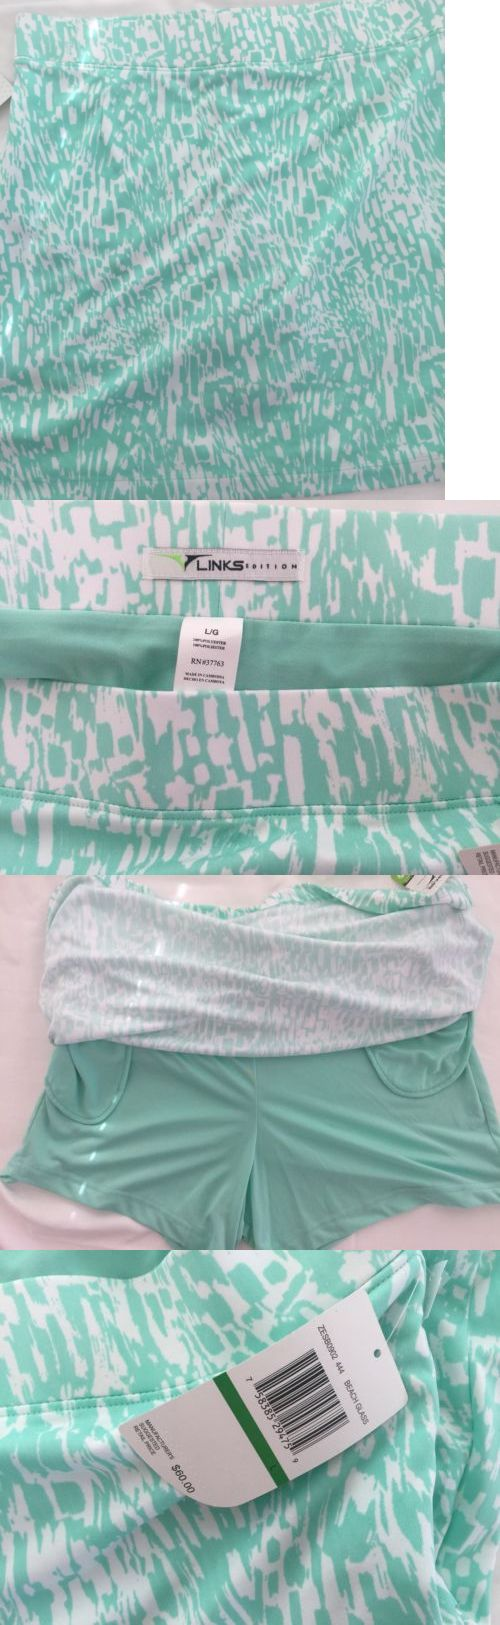 Skirts Skorts and Dresses 179003: Links Edition Beach Glass Golf Skirt Teal/Light Green With White Size Large New -> BUY IT NOW ONLY: $34.99 on eBay!